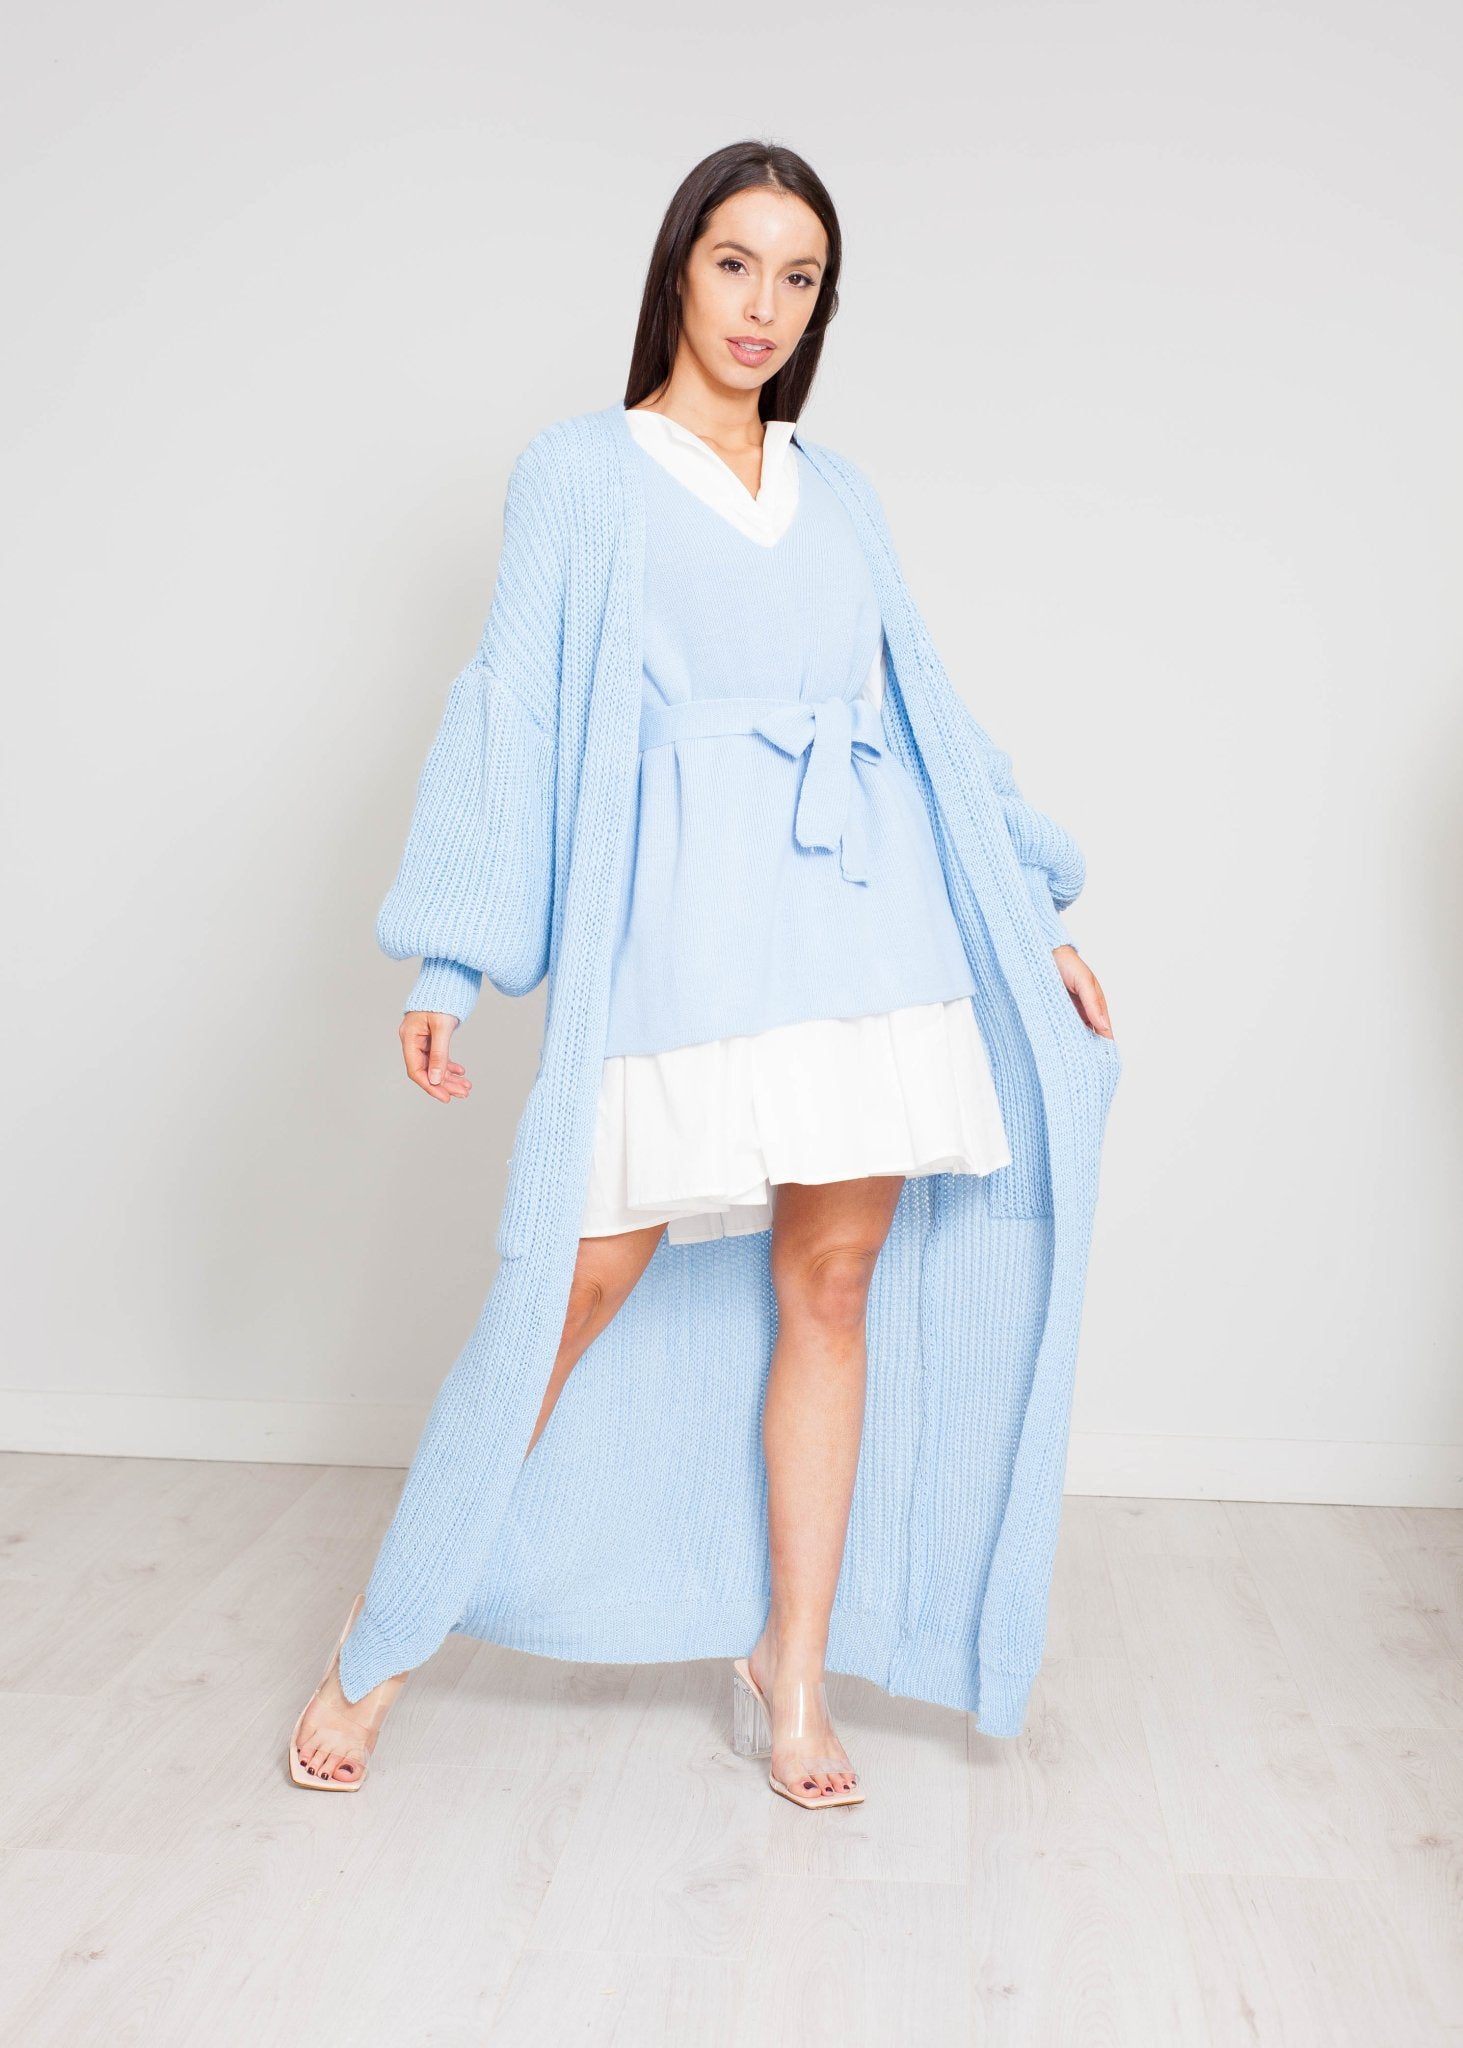 Priya Longline Puff Sleeve Cardigan In Blue - The Walk in Wardrobe